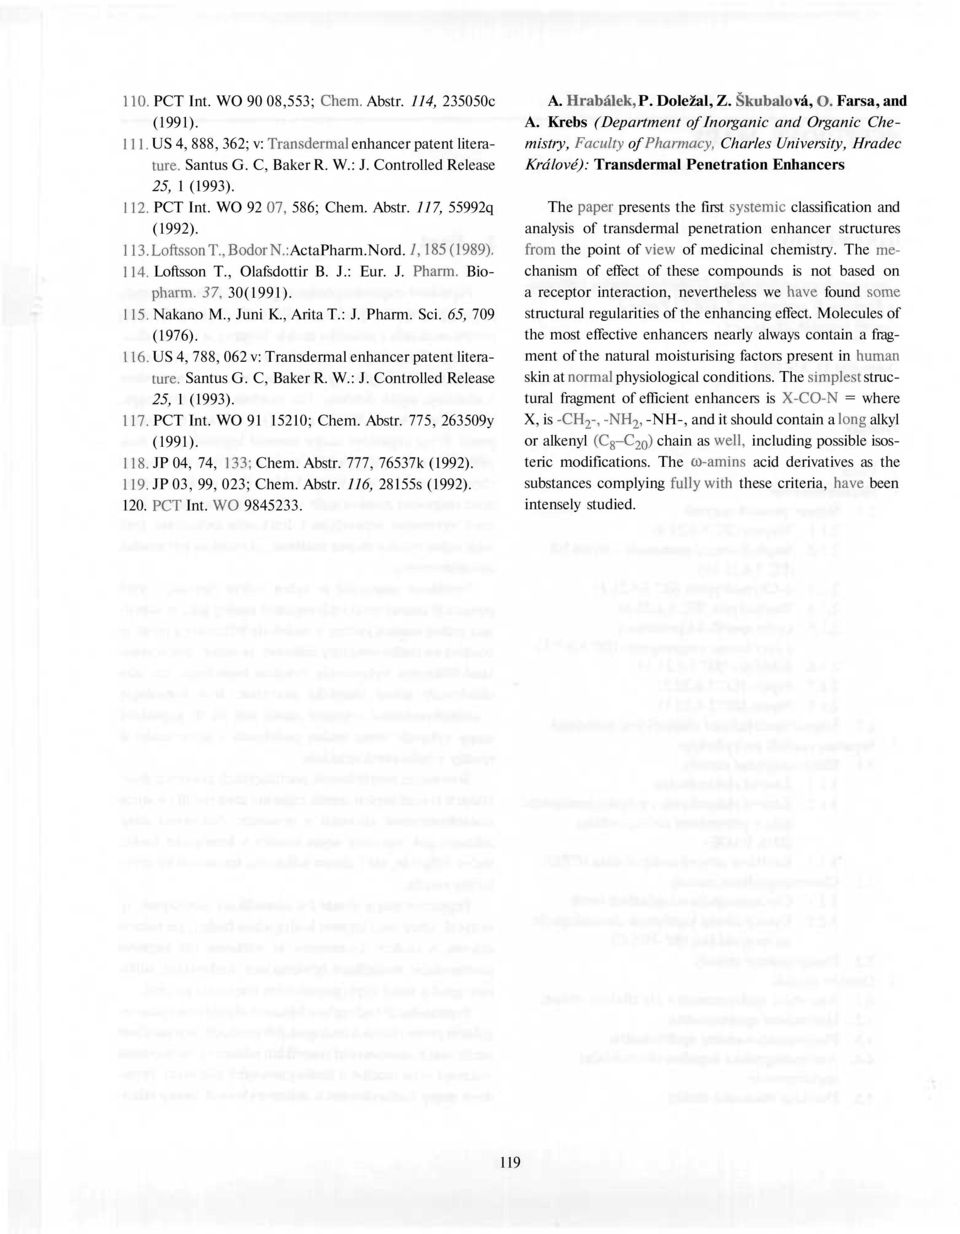 US 4, 788, 062 v: Transdermal enhancer patent literatuře. 117. PCT Int. WO 91 15210; Chem. Abstr. 775, 263509y (1991). 118. JP 04, 74, 133; Chem. Abstr. 777, 76537k (1992). 119. JP 03, 99, 023; Chem.